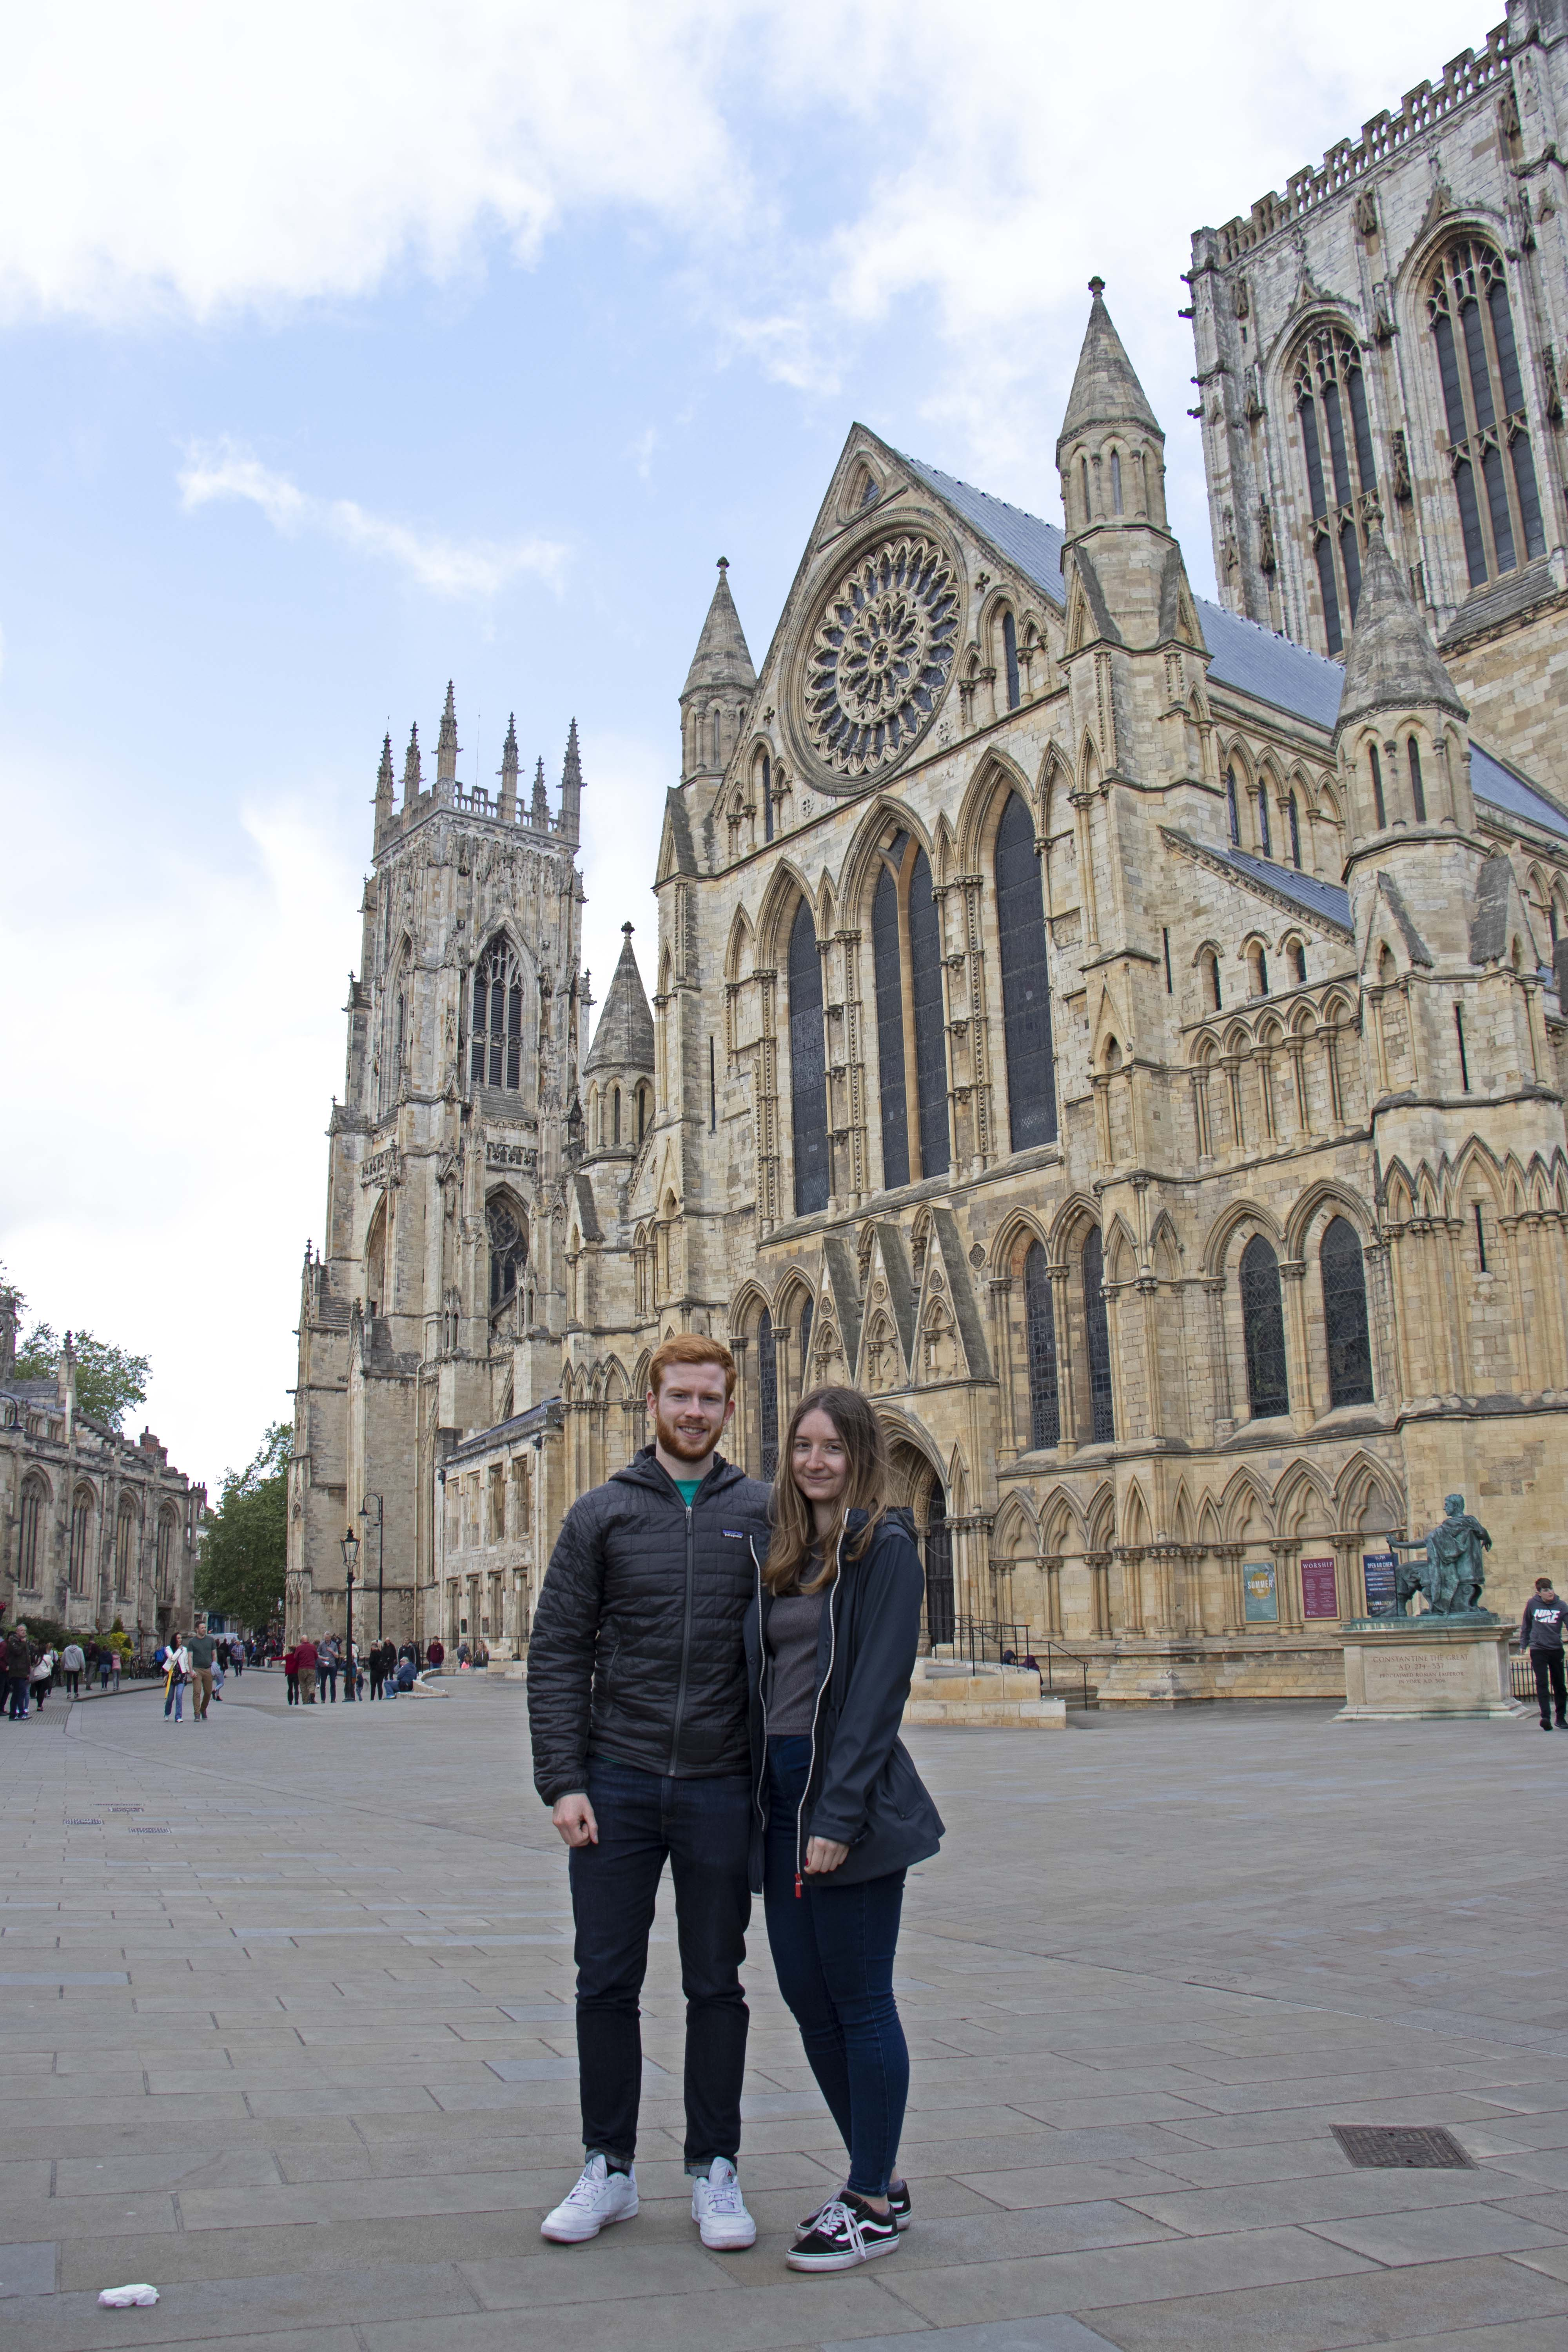 Outside York Minster, York